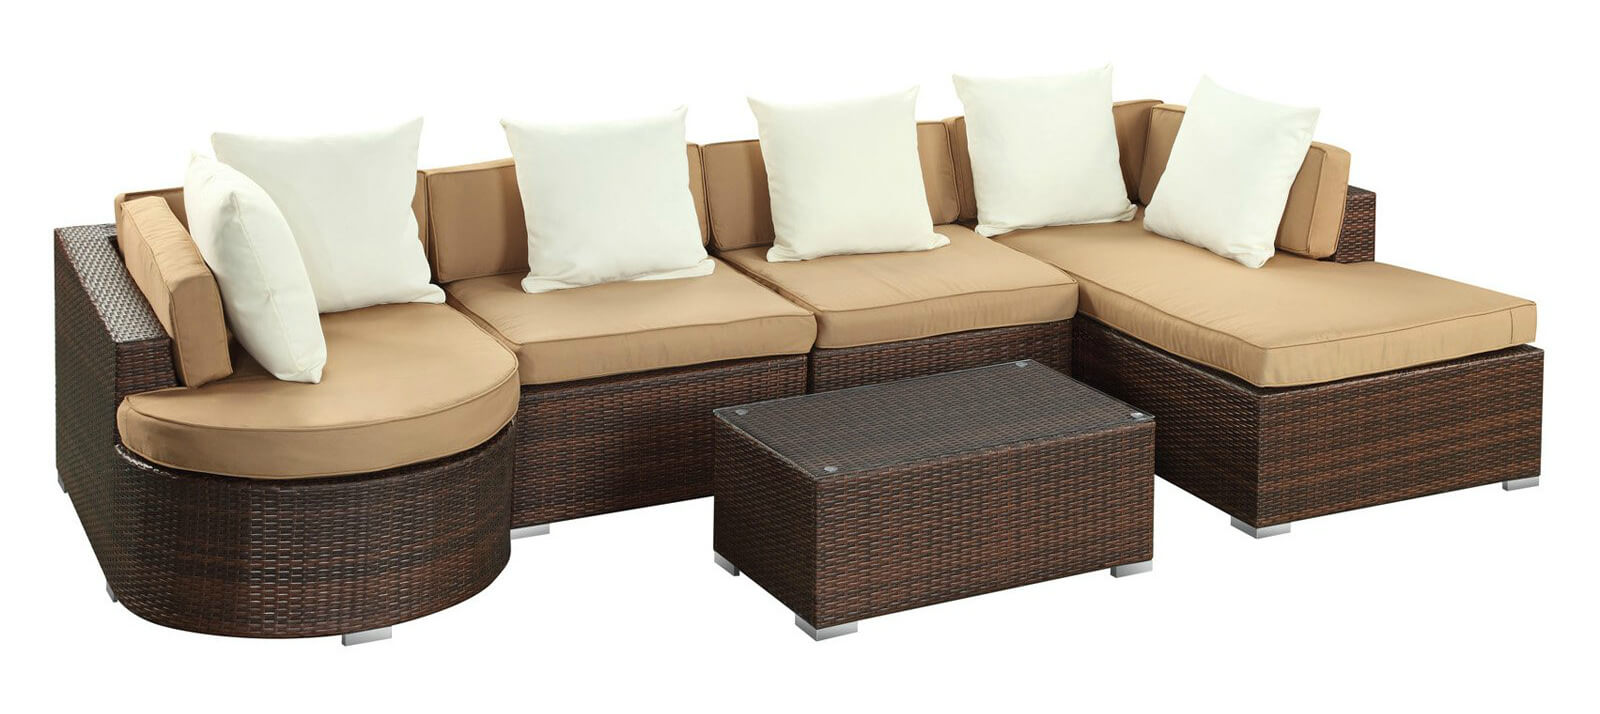 Rich dark resin wicker body on this patio sectional includes chaise on right and rounded large chair piece on left, with glass topped table included at center.